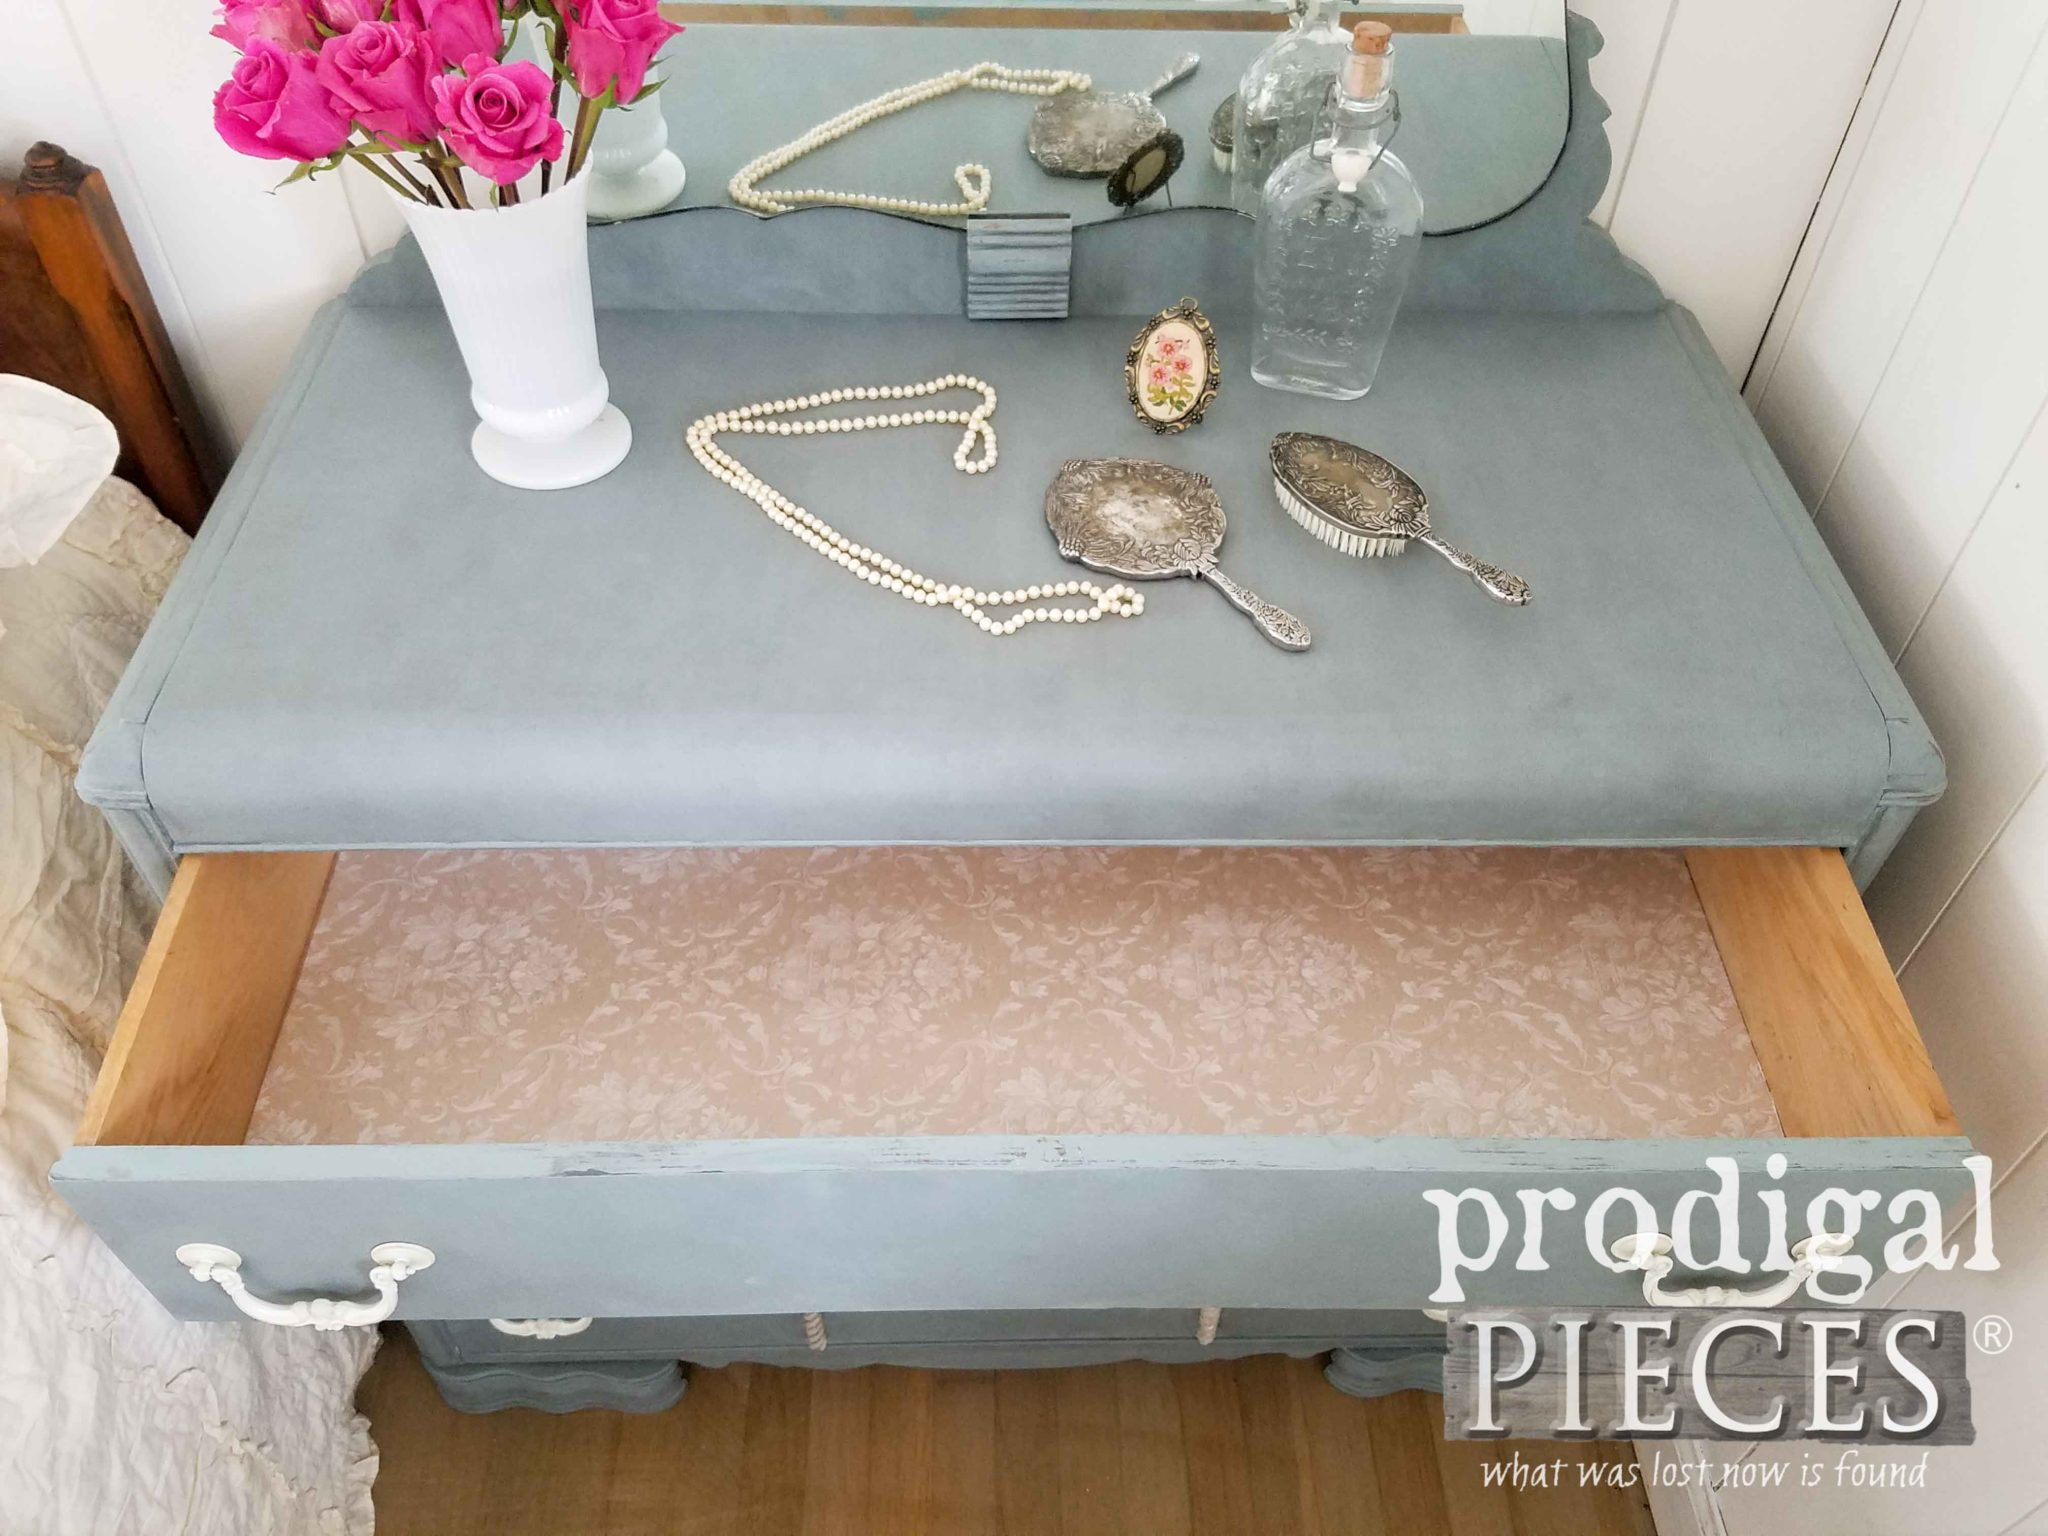 Vintage Art Deco Mirrored Dresser with Paper Lined Drawers by Prodigal Pieces | prodigalpieces.com